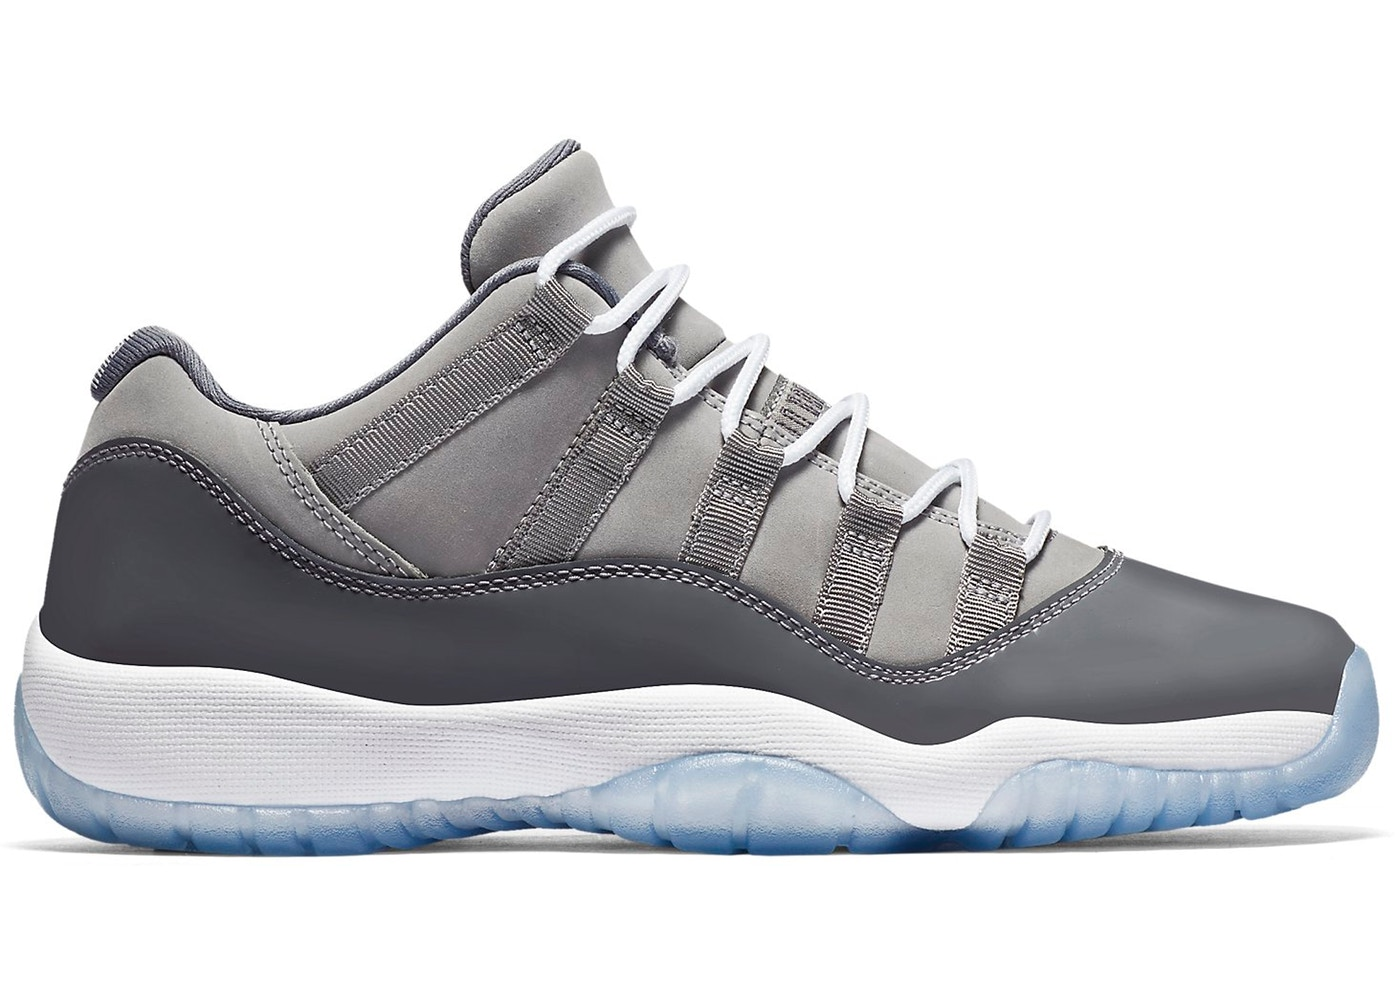 e83cfb69473fd5 Jordan 11 Retro Low Cool Grey (GS) - 528896-003